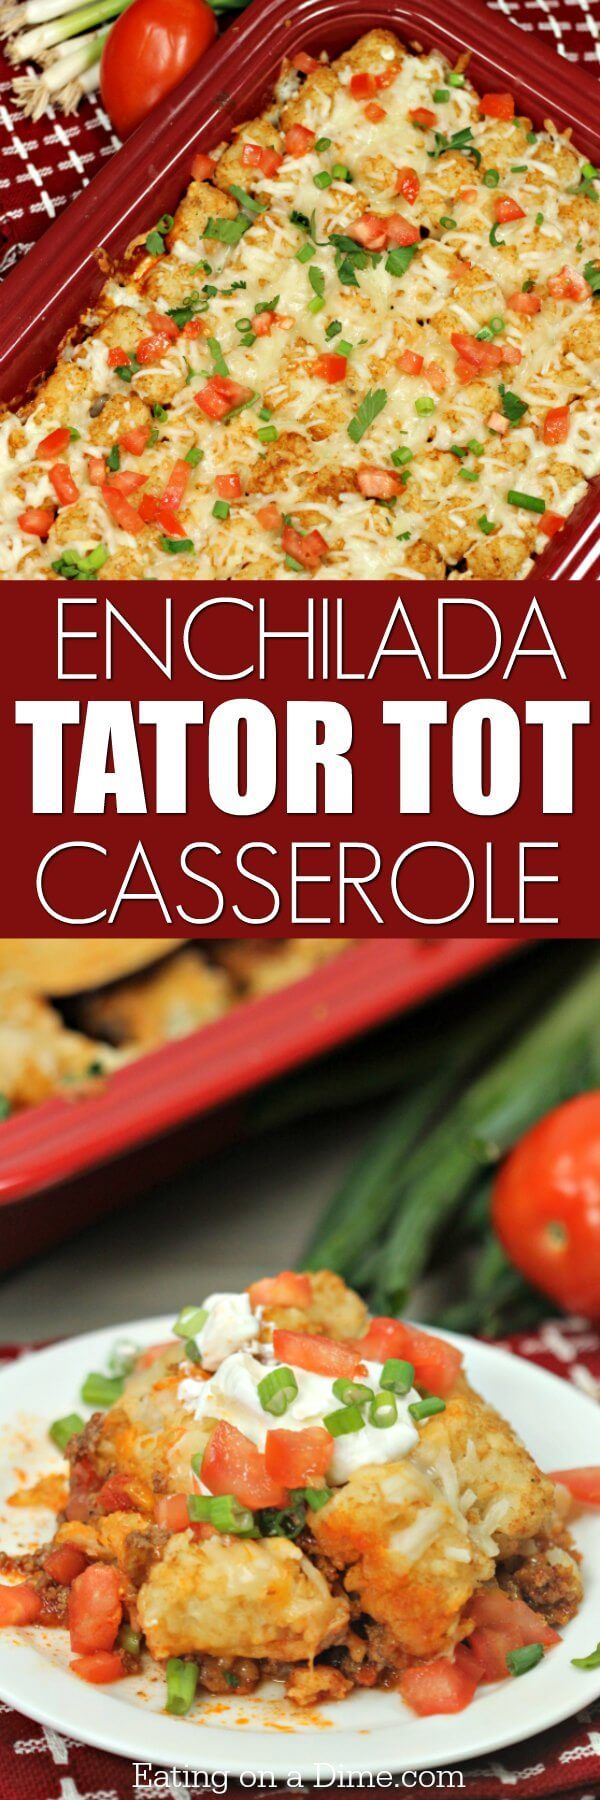 If you love tator tot casseroles, you will love this easy beef enchilada tator tot casserole recipe. All the flavors of beef enchiladas in a casserole.